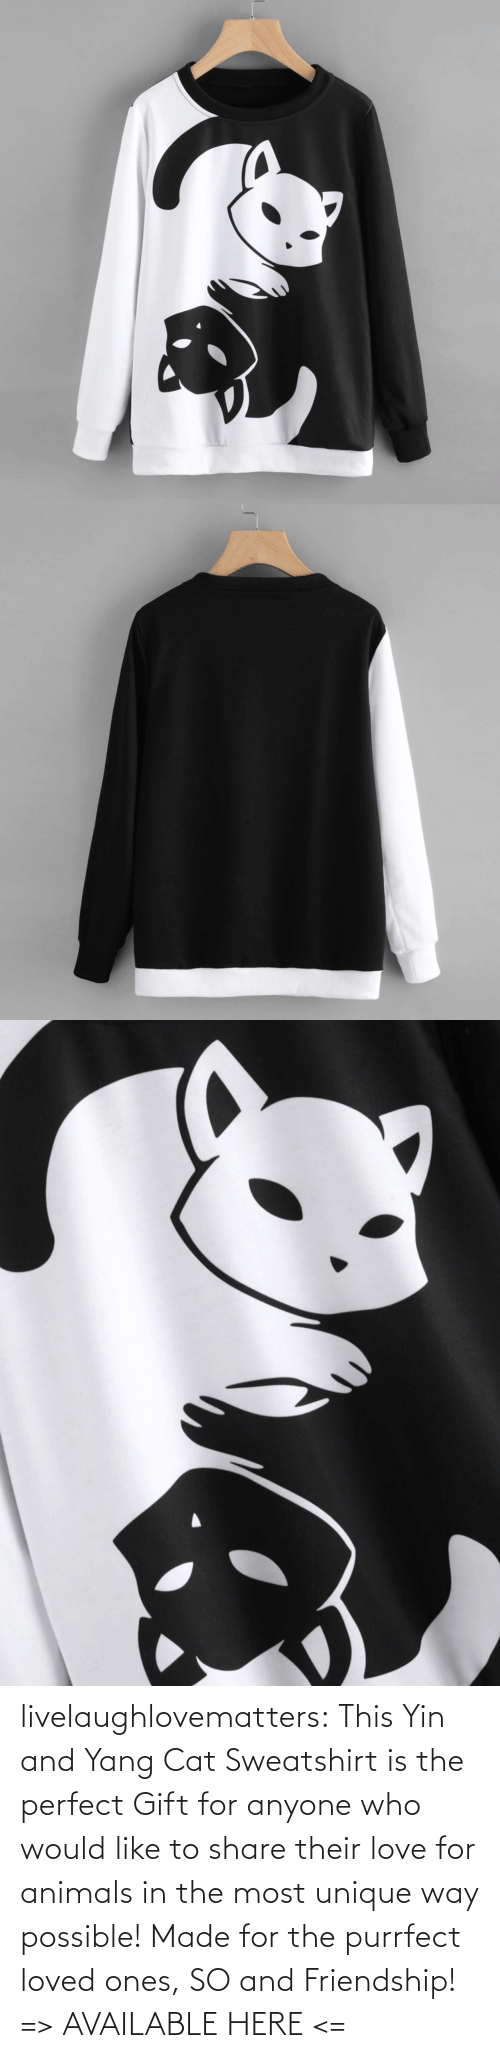 Black And: livelaughlovematters: This Yin and Yang Cat Sweatshirt is the perfect Gift for anyone who would like to share their love for animals in the most unique way possible! Made for the purrfect loved ones, SO and Friendship!  => AVAILABLE HERE <=